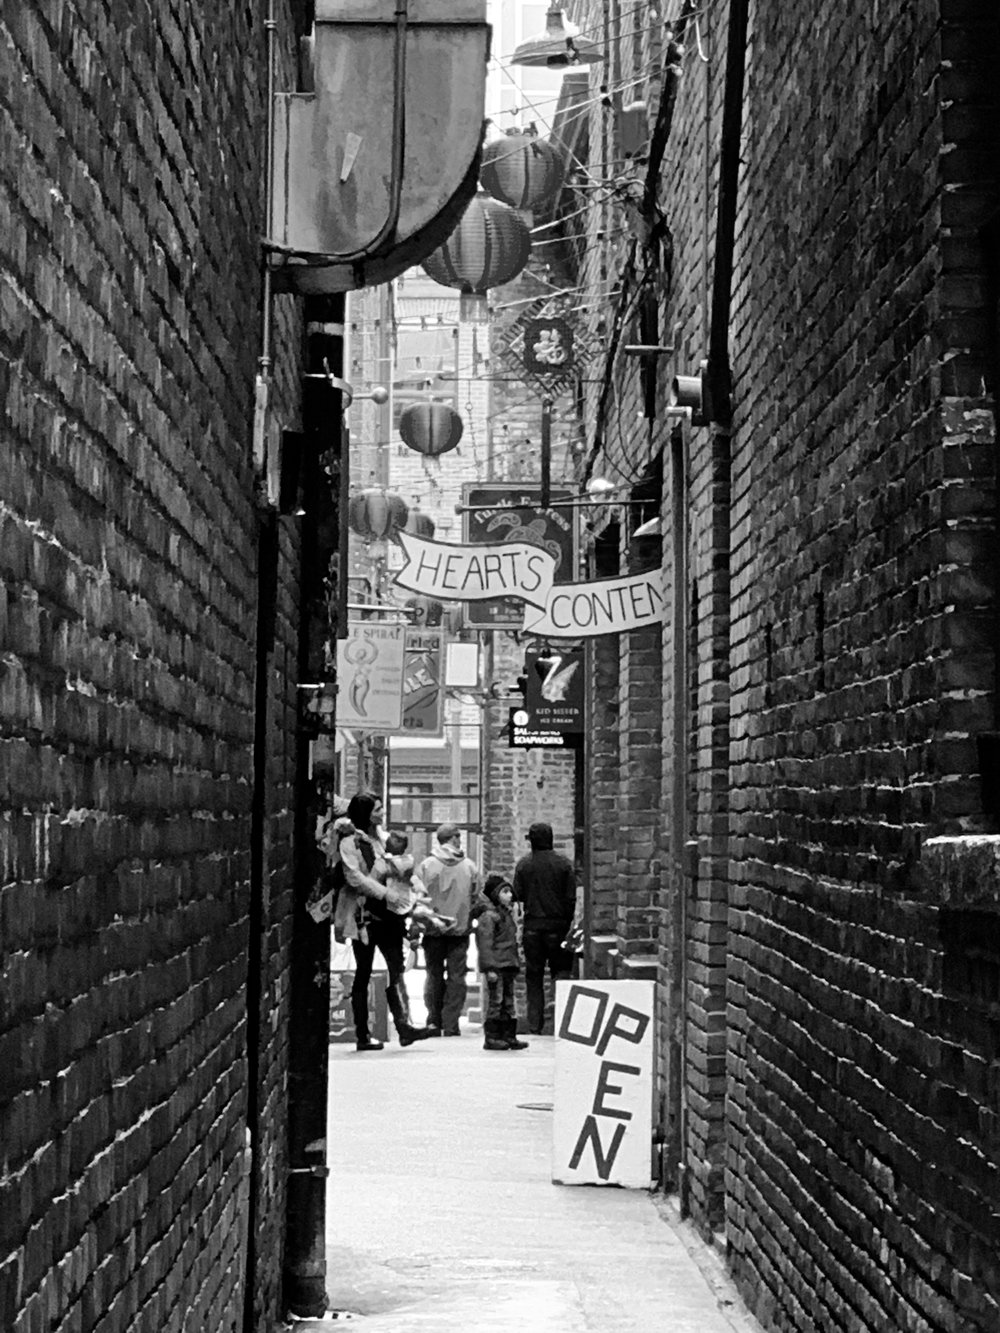 Fan Tan Alley, Chinatown, Victoria, BC